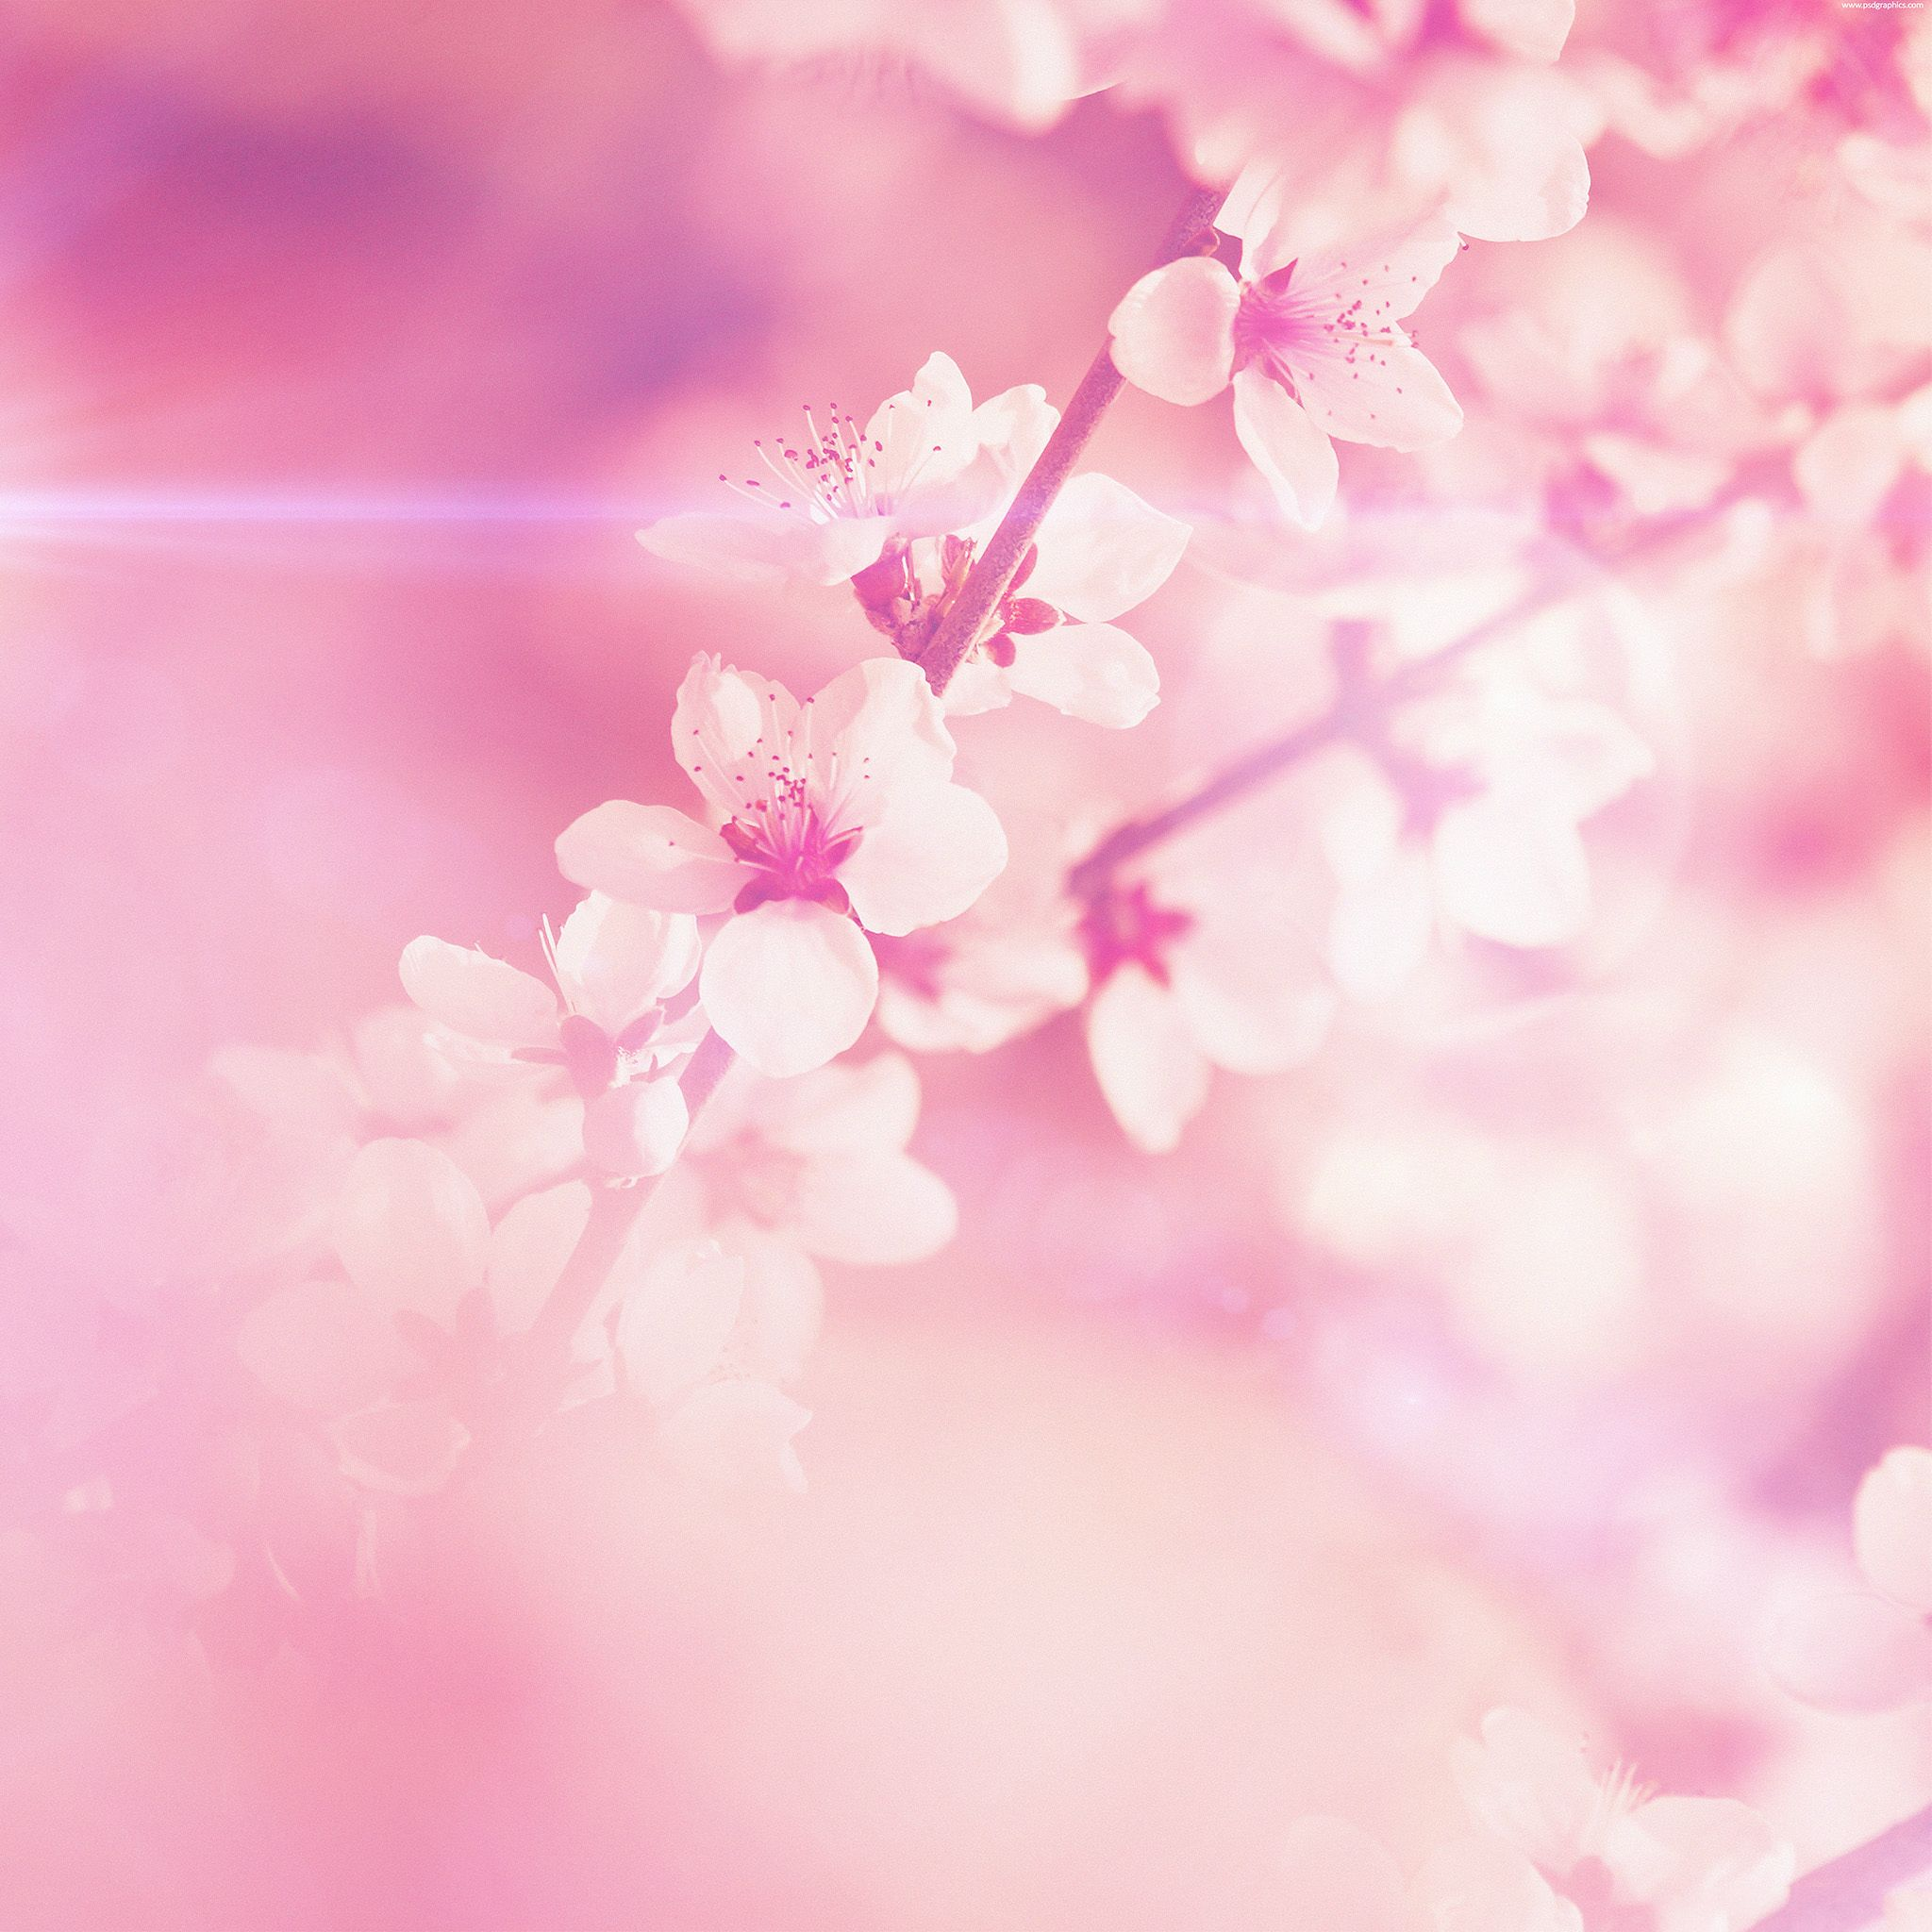 Spring pink cherry blossom flare nature ipad air wallpaper search results for ipad air wallpaper pink adorable wallpapers voltagebd Choice Image